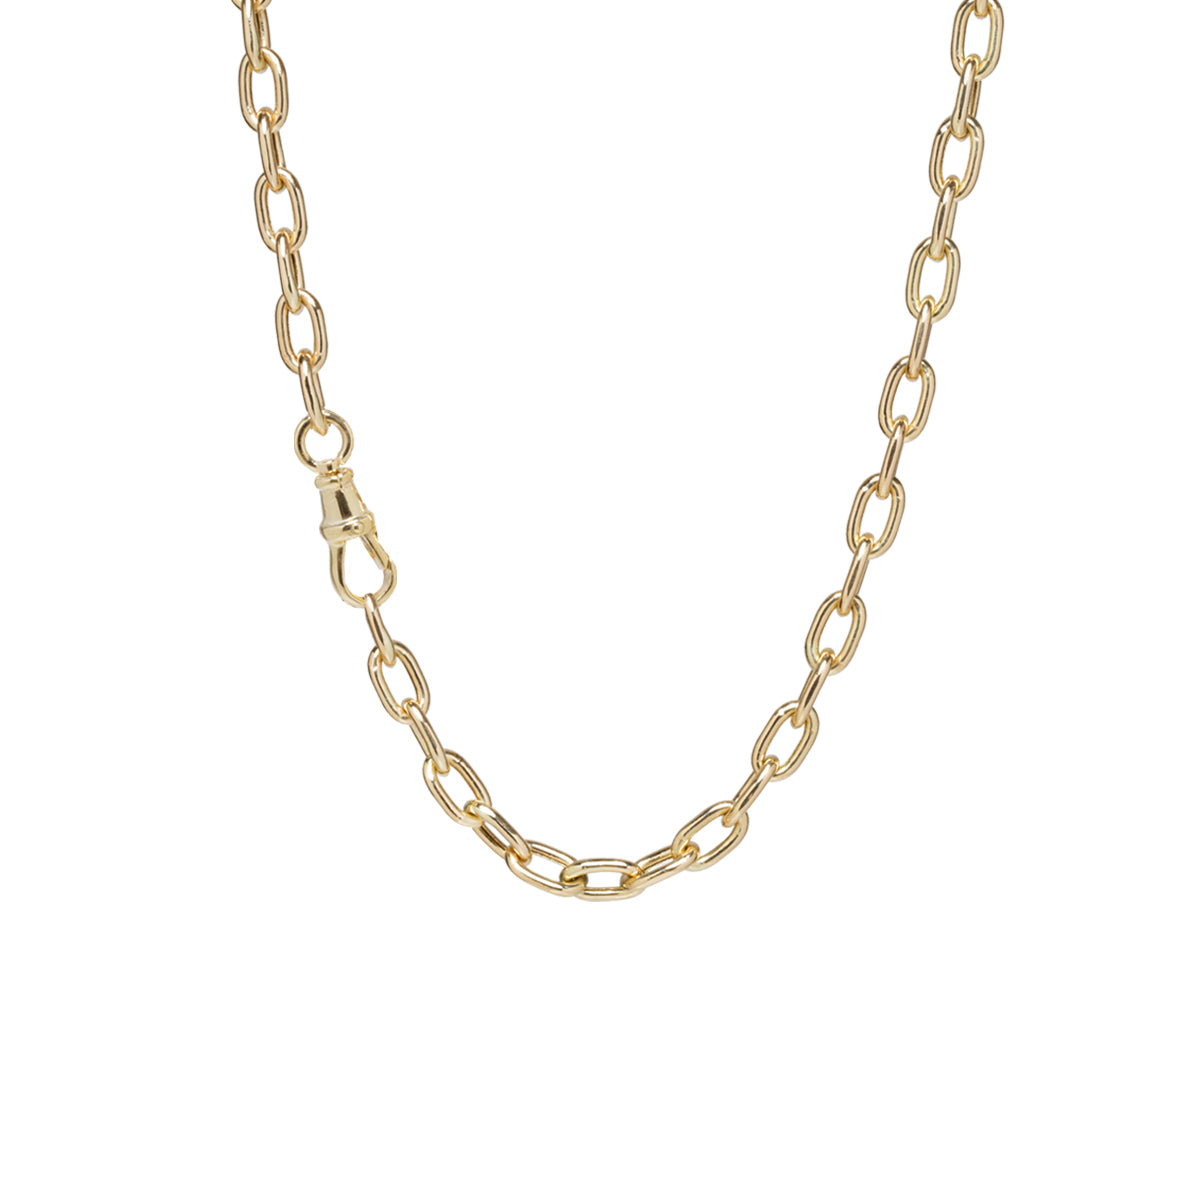 14k gold extra large square oval link chain with single swivel clasp